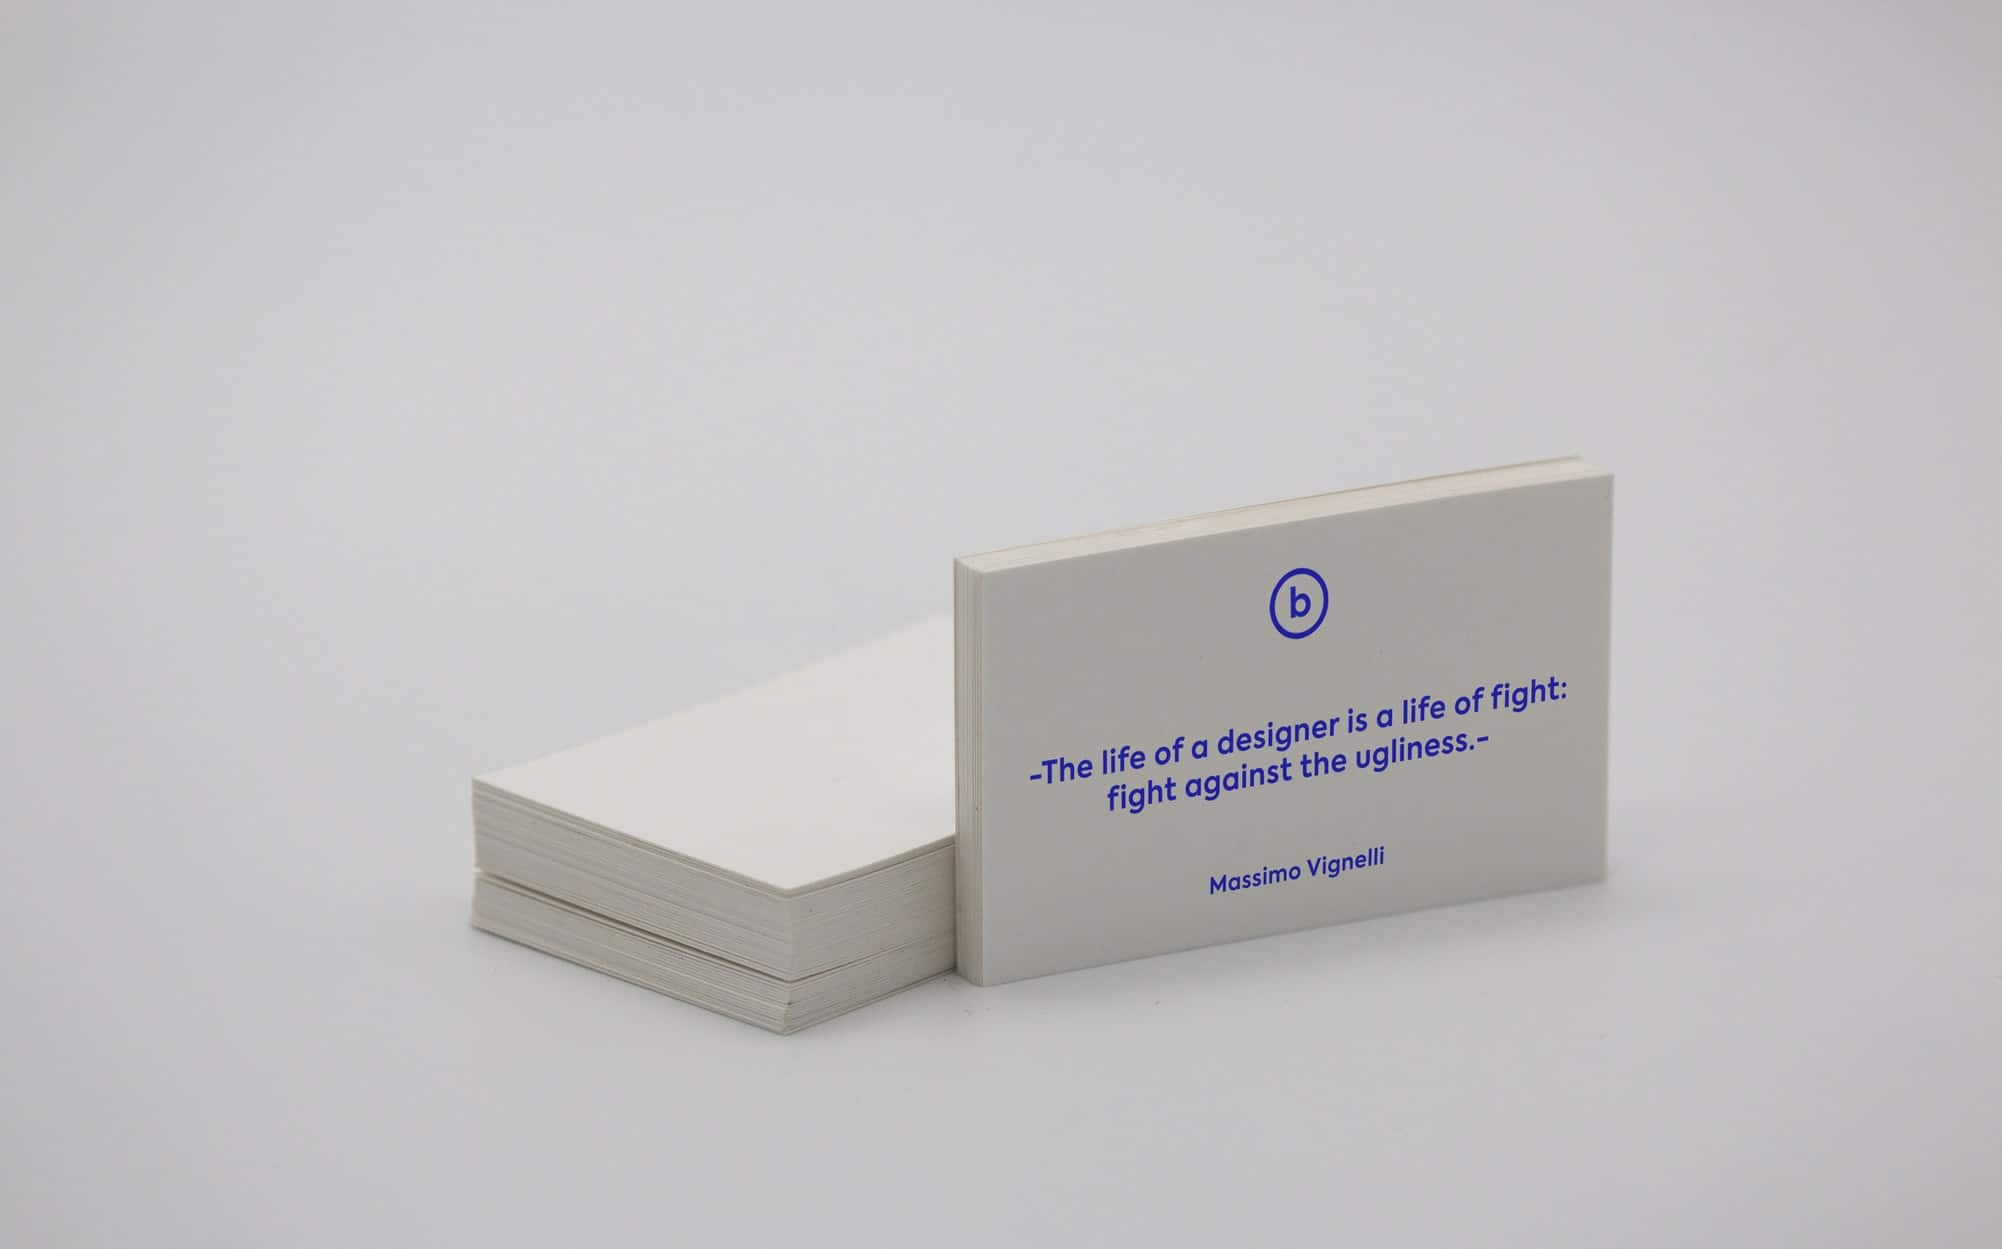 A proffessional business card.